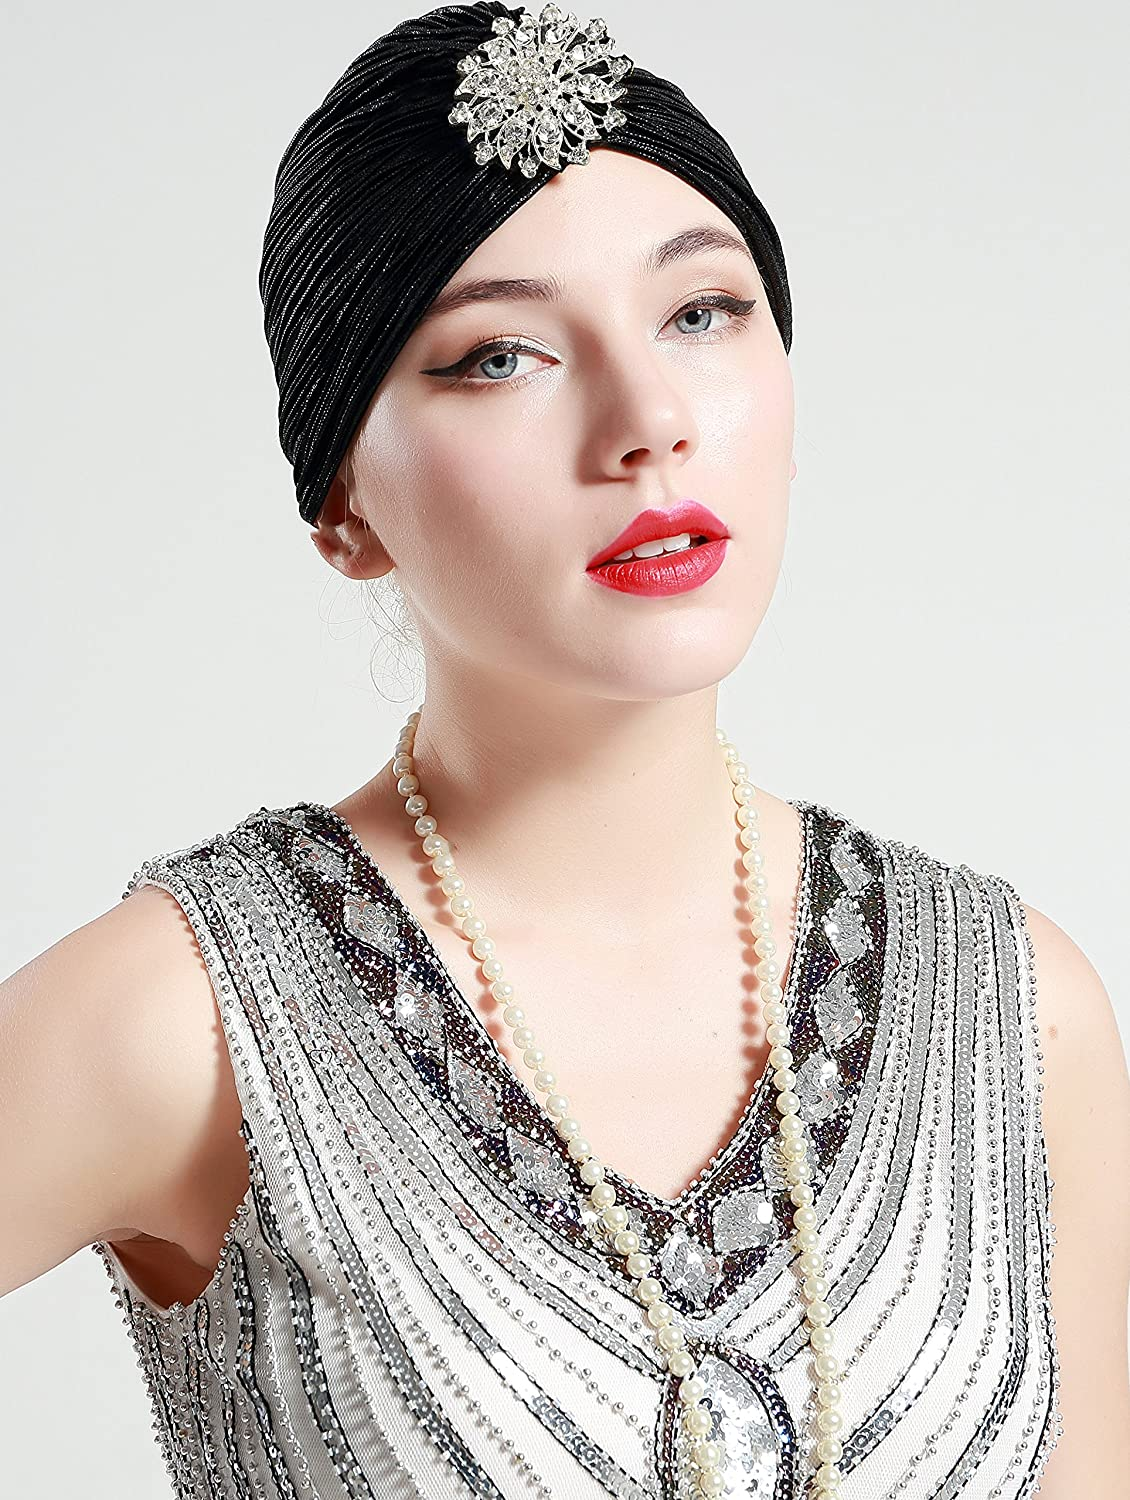 Vintage Hair Accessories: Combs, Headbands, Flowers, Scarf, Wigs BABEYOND Womens Ruffle Turban Hat Knit Turban Headwraps with Detachable Crystal Brooch for 1920s Gatsby Party $11.99 AT vintagedancer.com